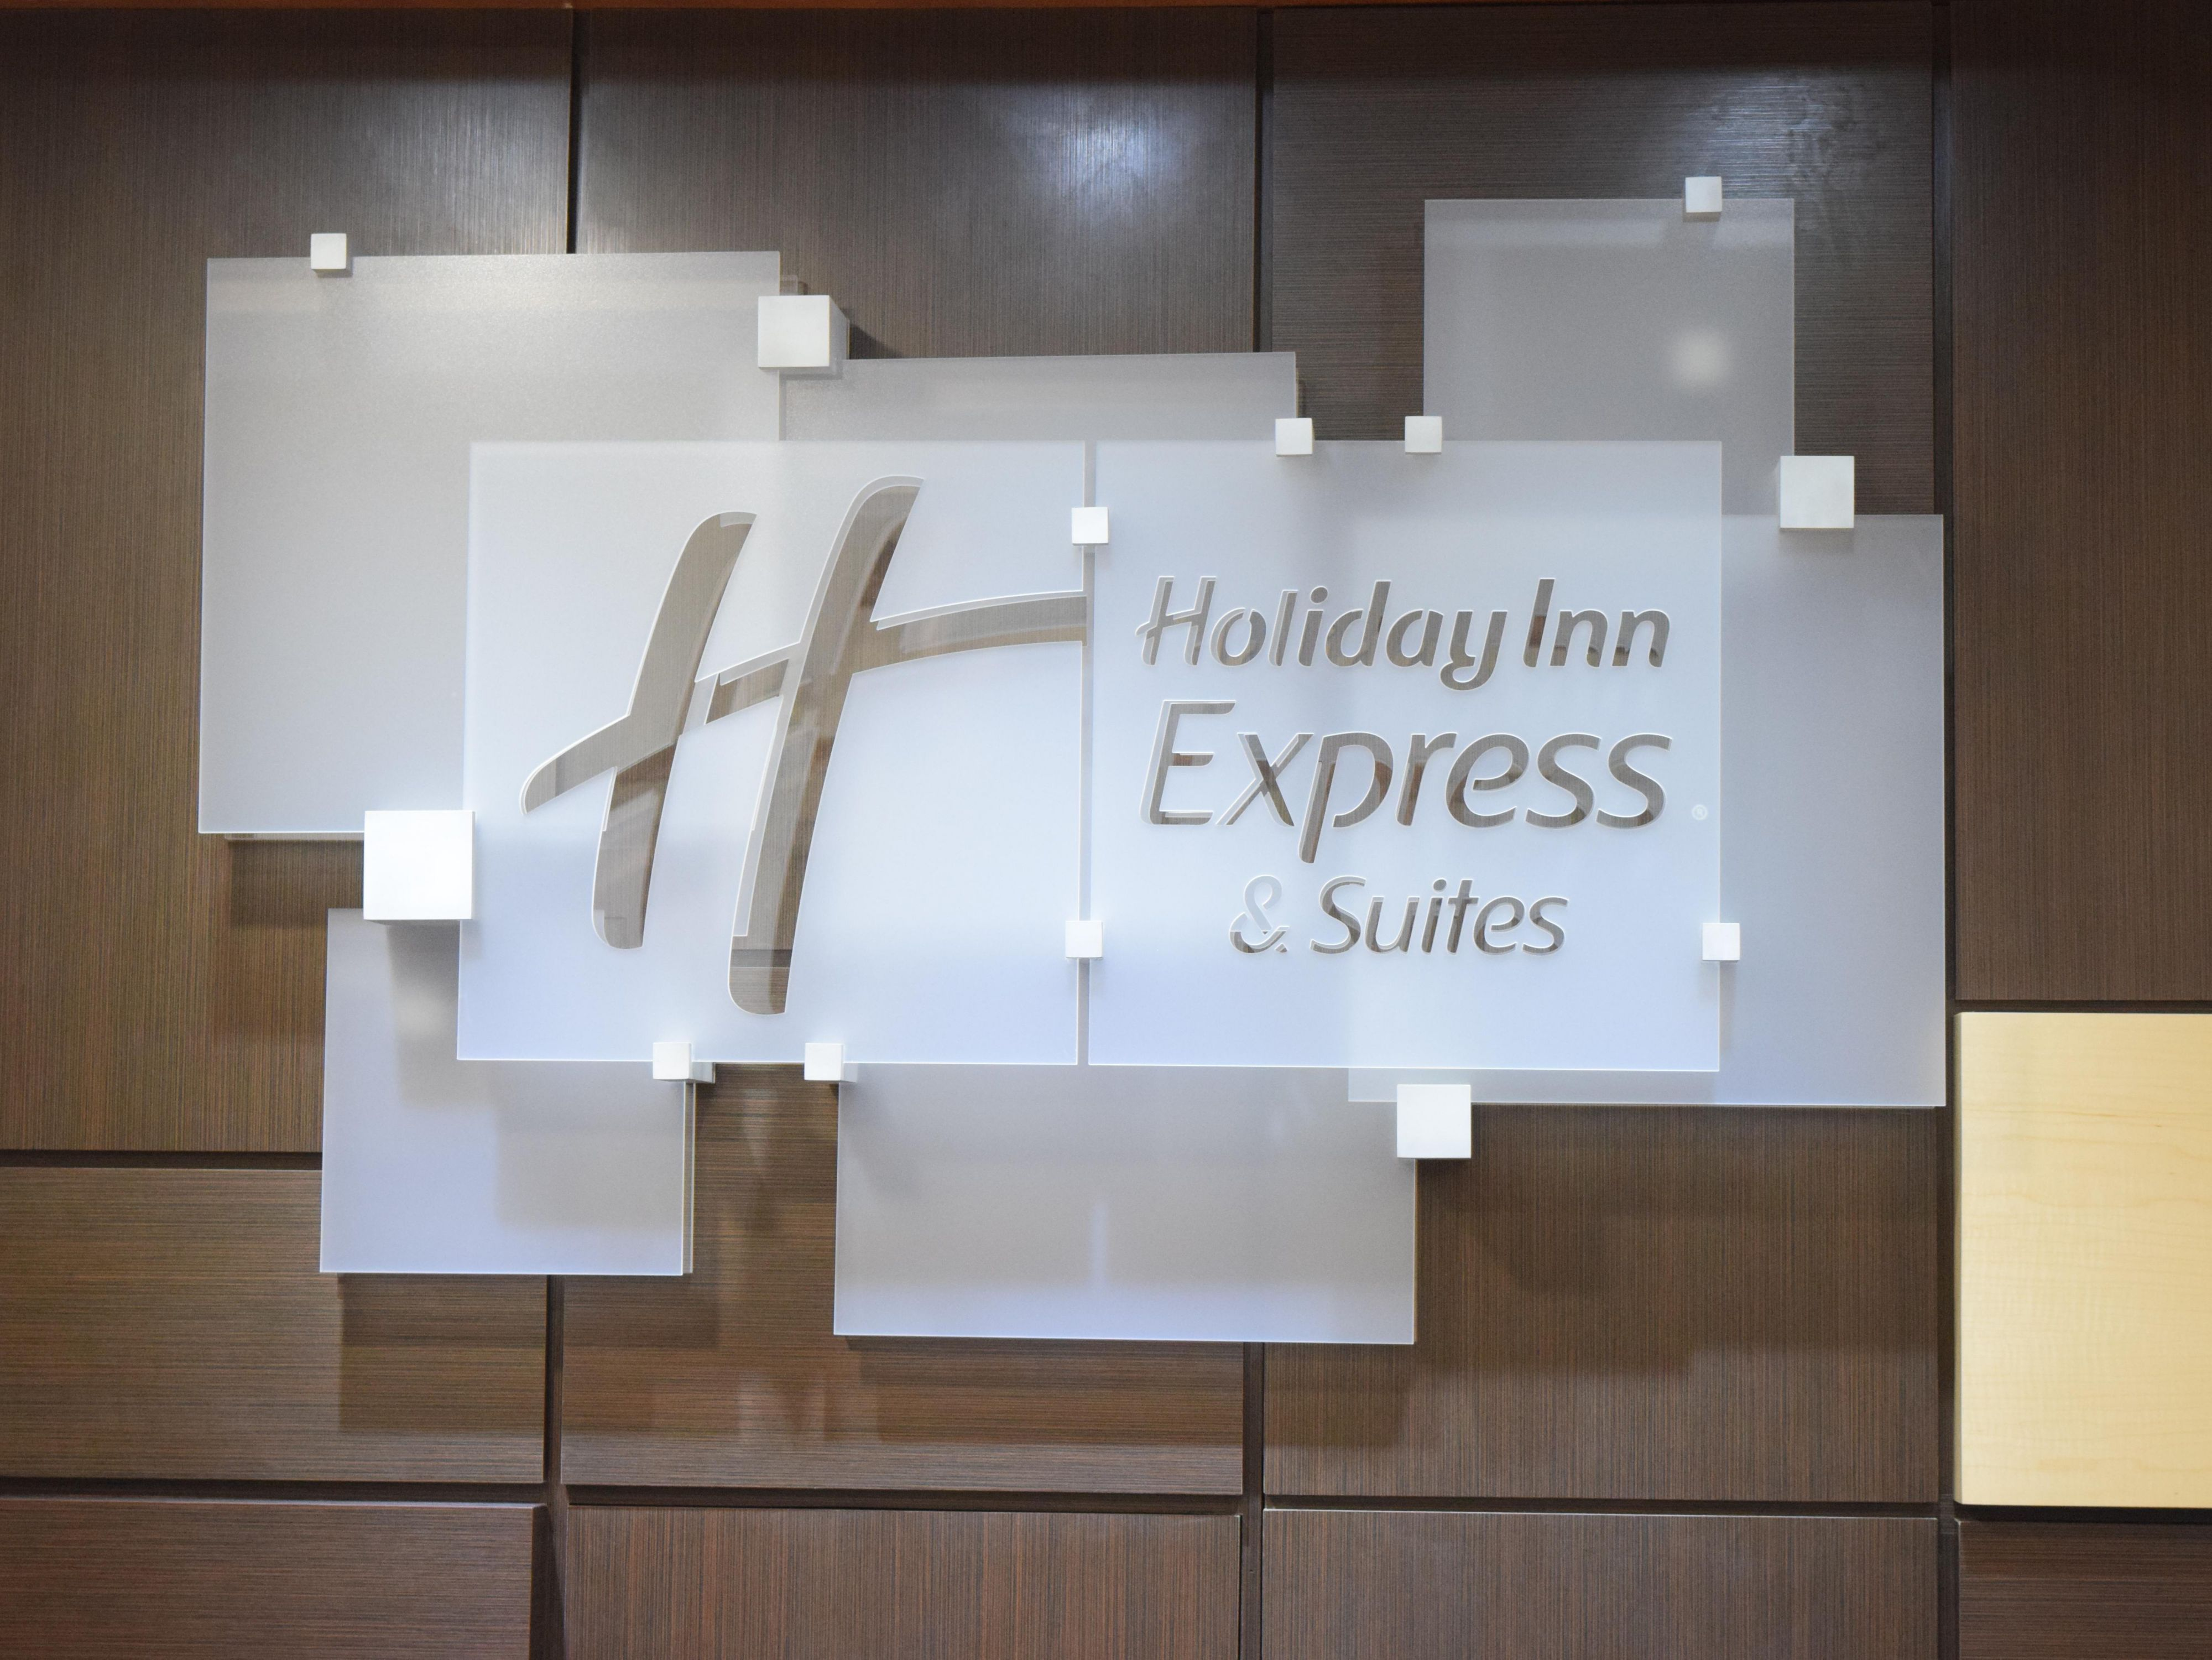 Stay Smart in Pensacola - Holiday Inn Express & Suites